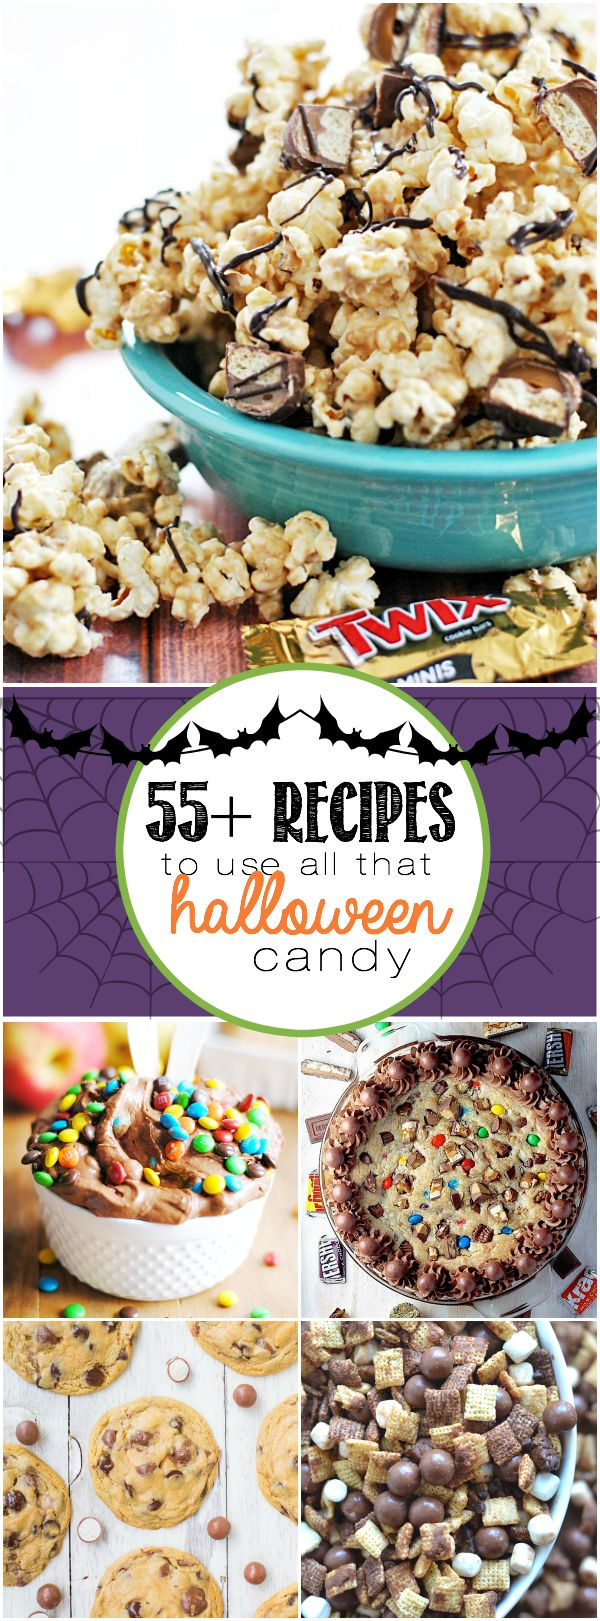 Over 55 recipes that use up all that leftover Halloween candy in delicious treats!